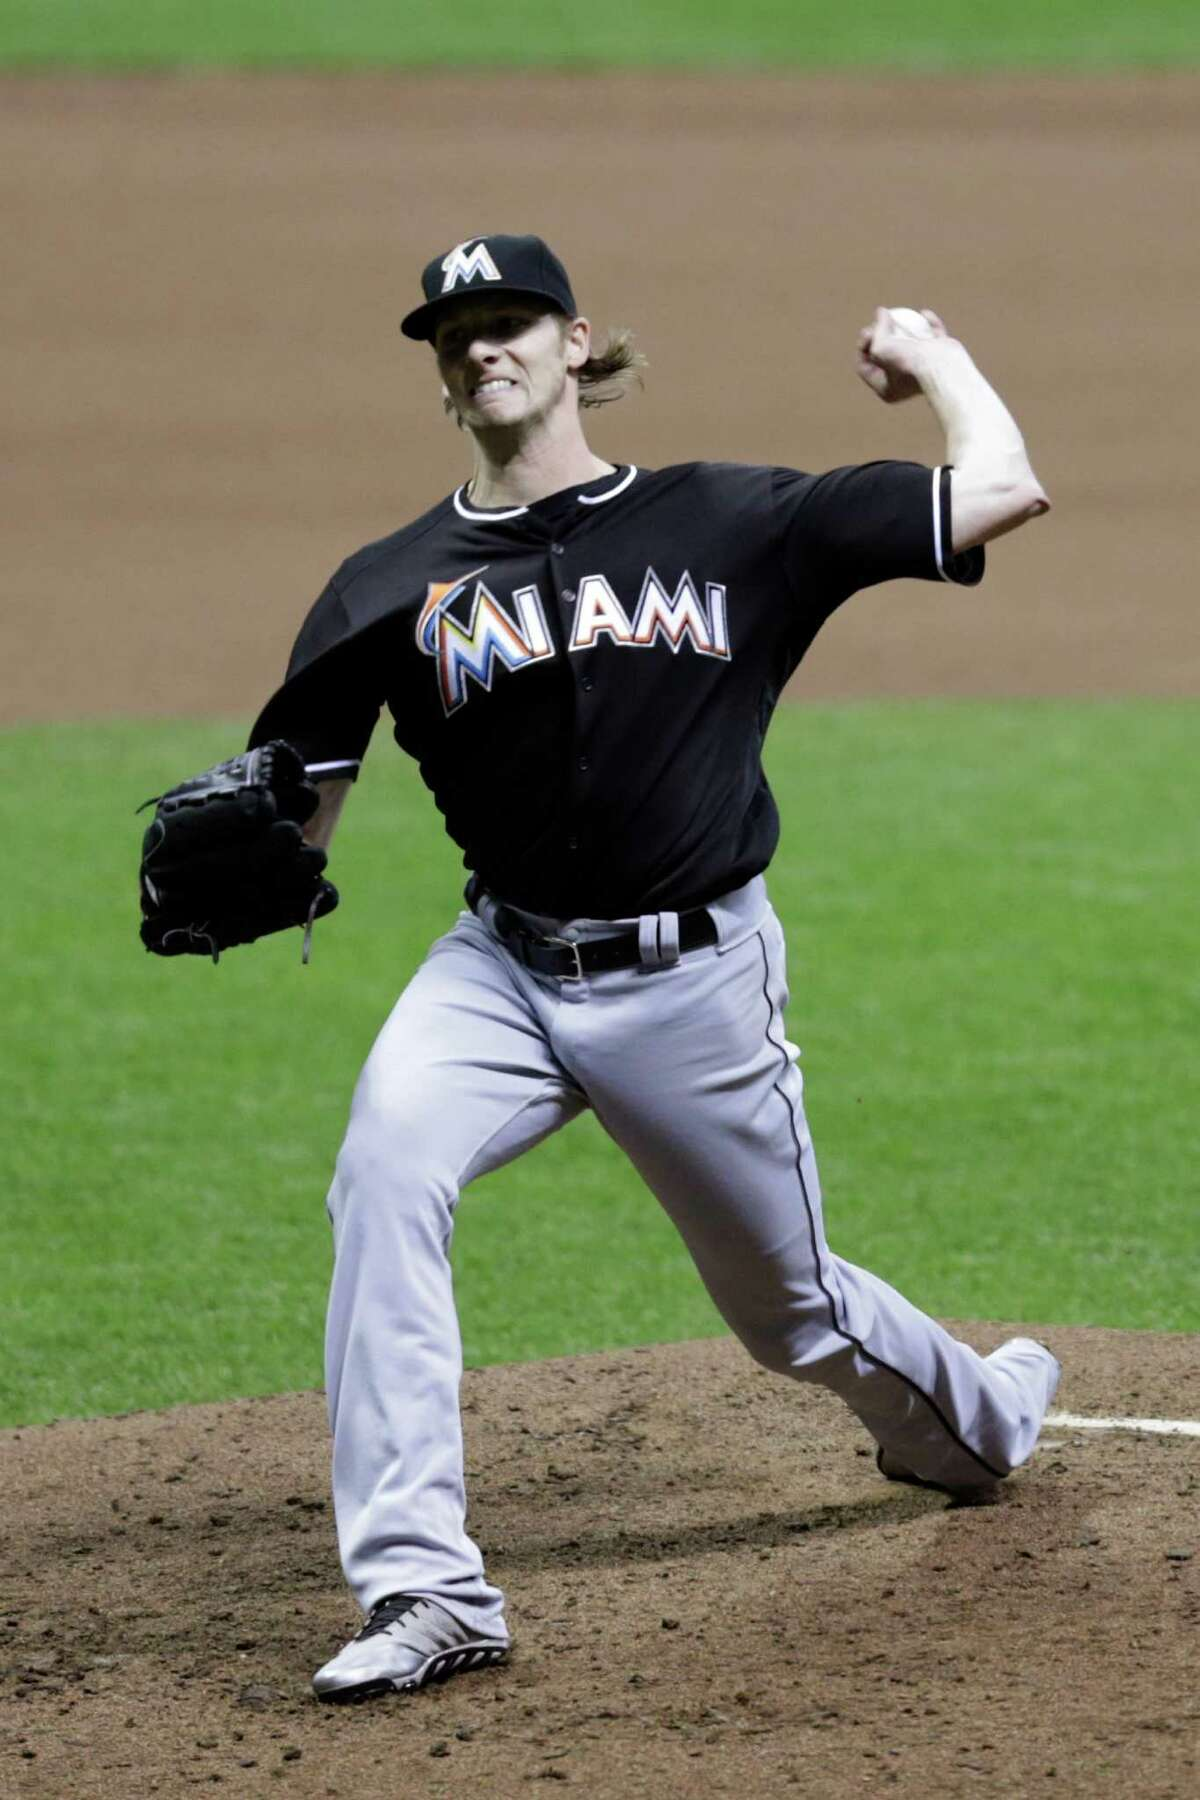 MILWAUKEE, WI - APRIL 29: Adam Conley #61 of the Miami Marlins pitches during the eighth inning against the Milwaukee Brewers at Miller Park on April 29, 2016 in Milwaukee, Wisconsin. (Photo by Mike McGinnis/Getty Images) ORG XMIT: 607676657